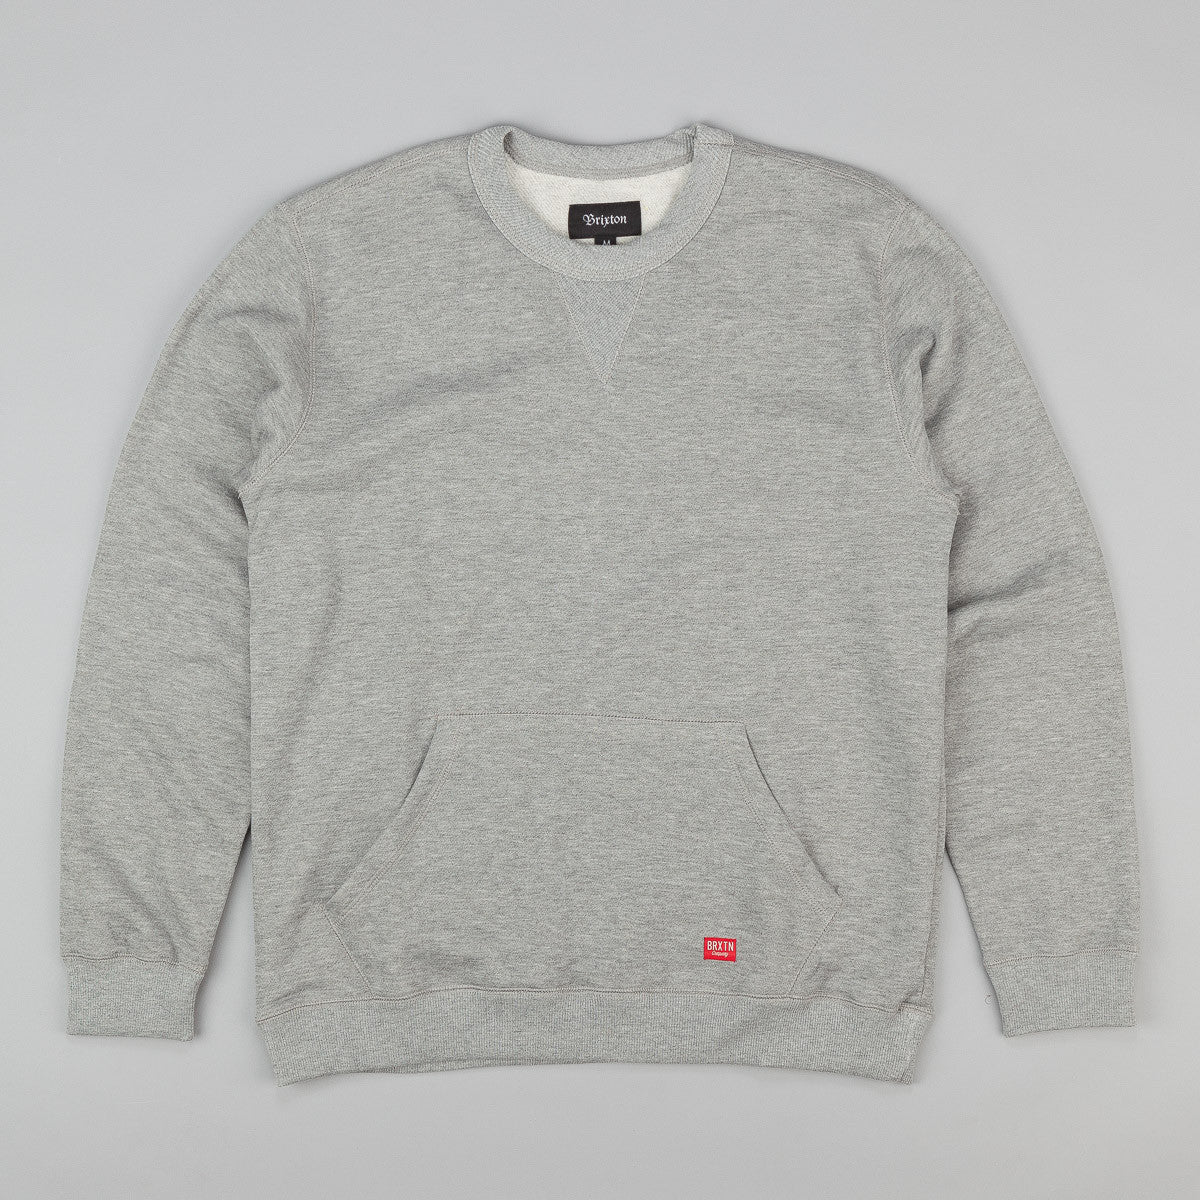 Brixton Hoover Sweatshirt - Heather Grey